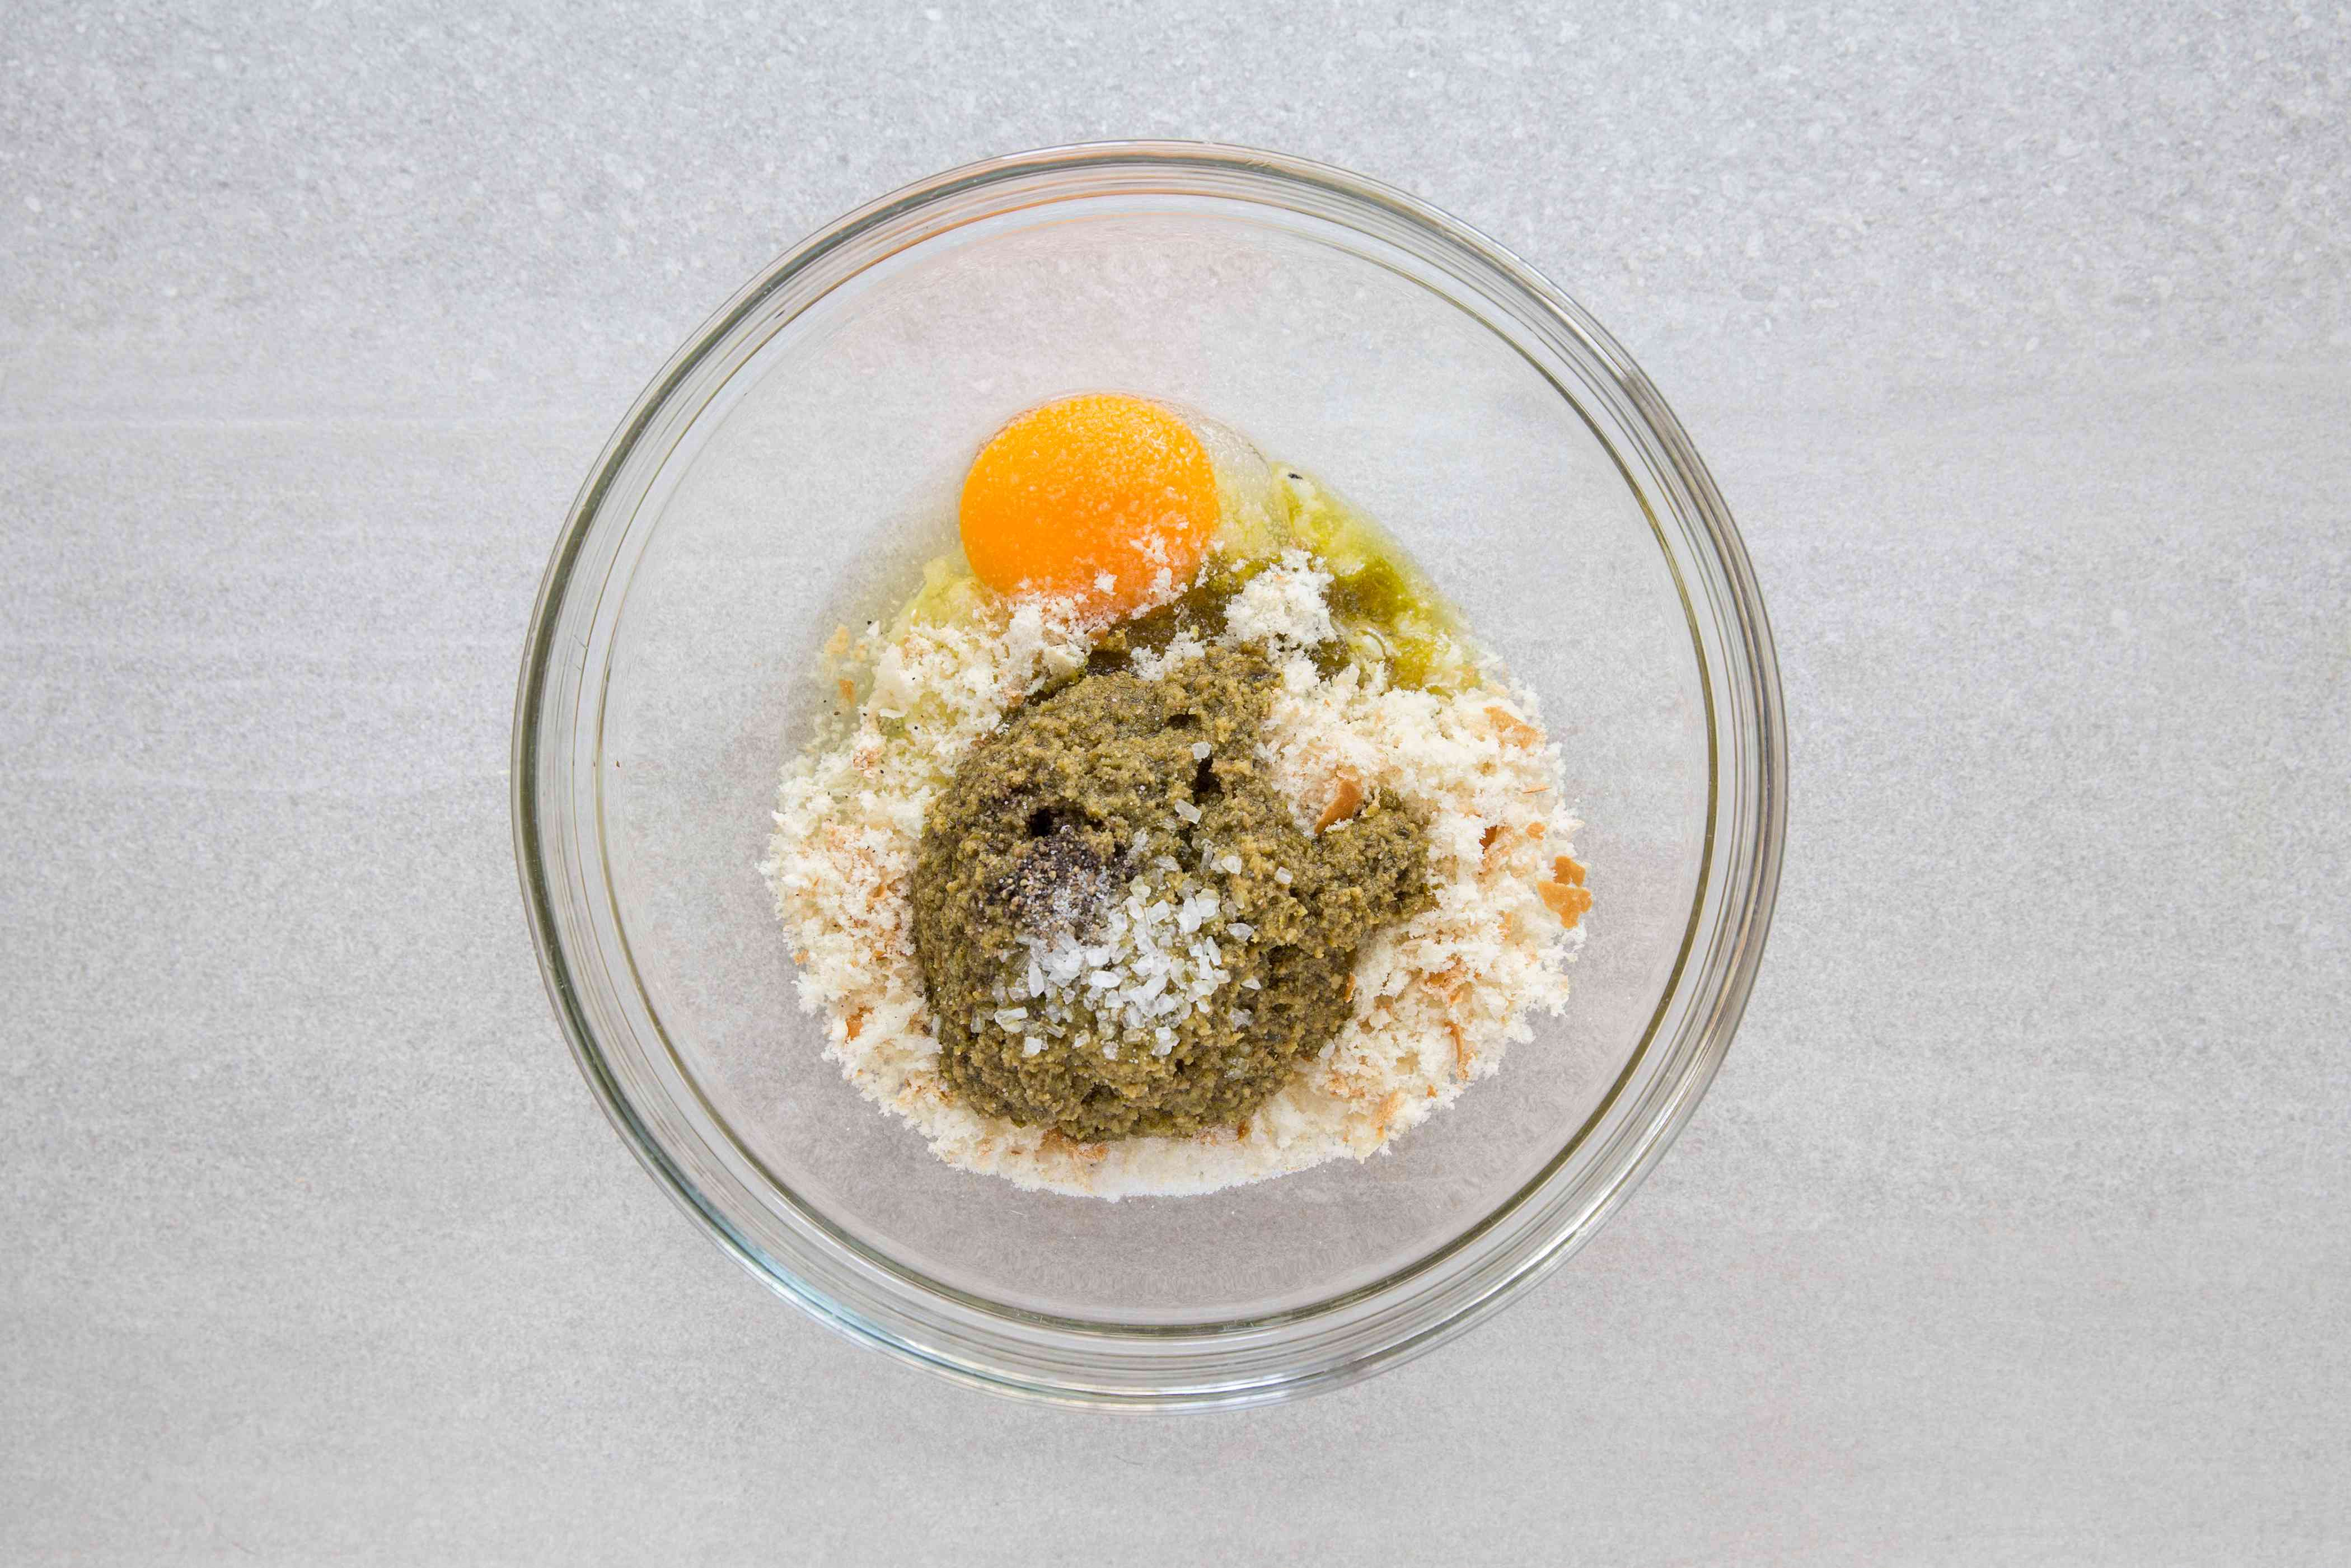 pesto, cheese, egg, bread crumbs, salt, and pepper in a bowl